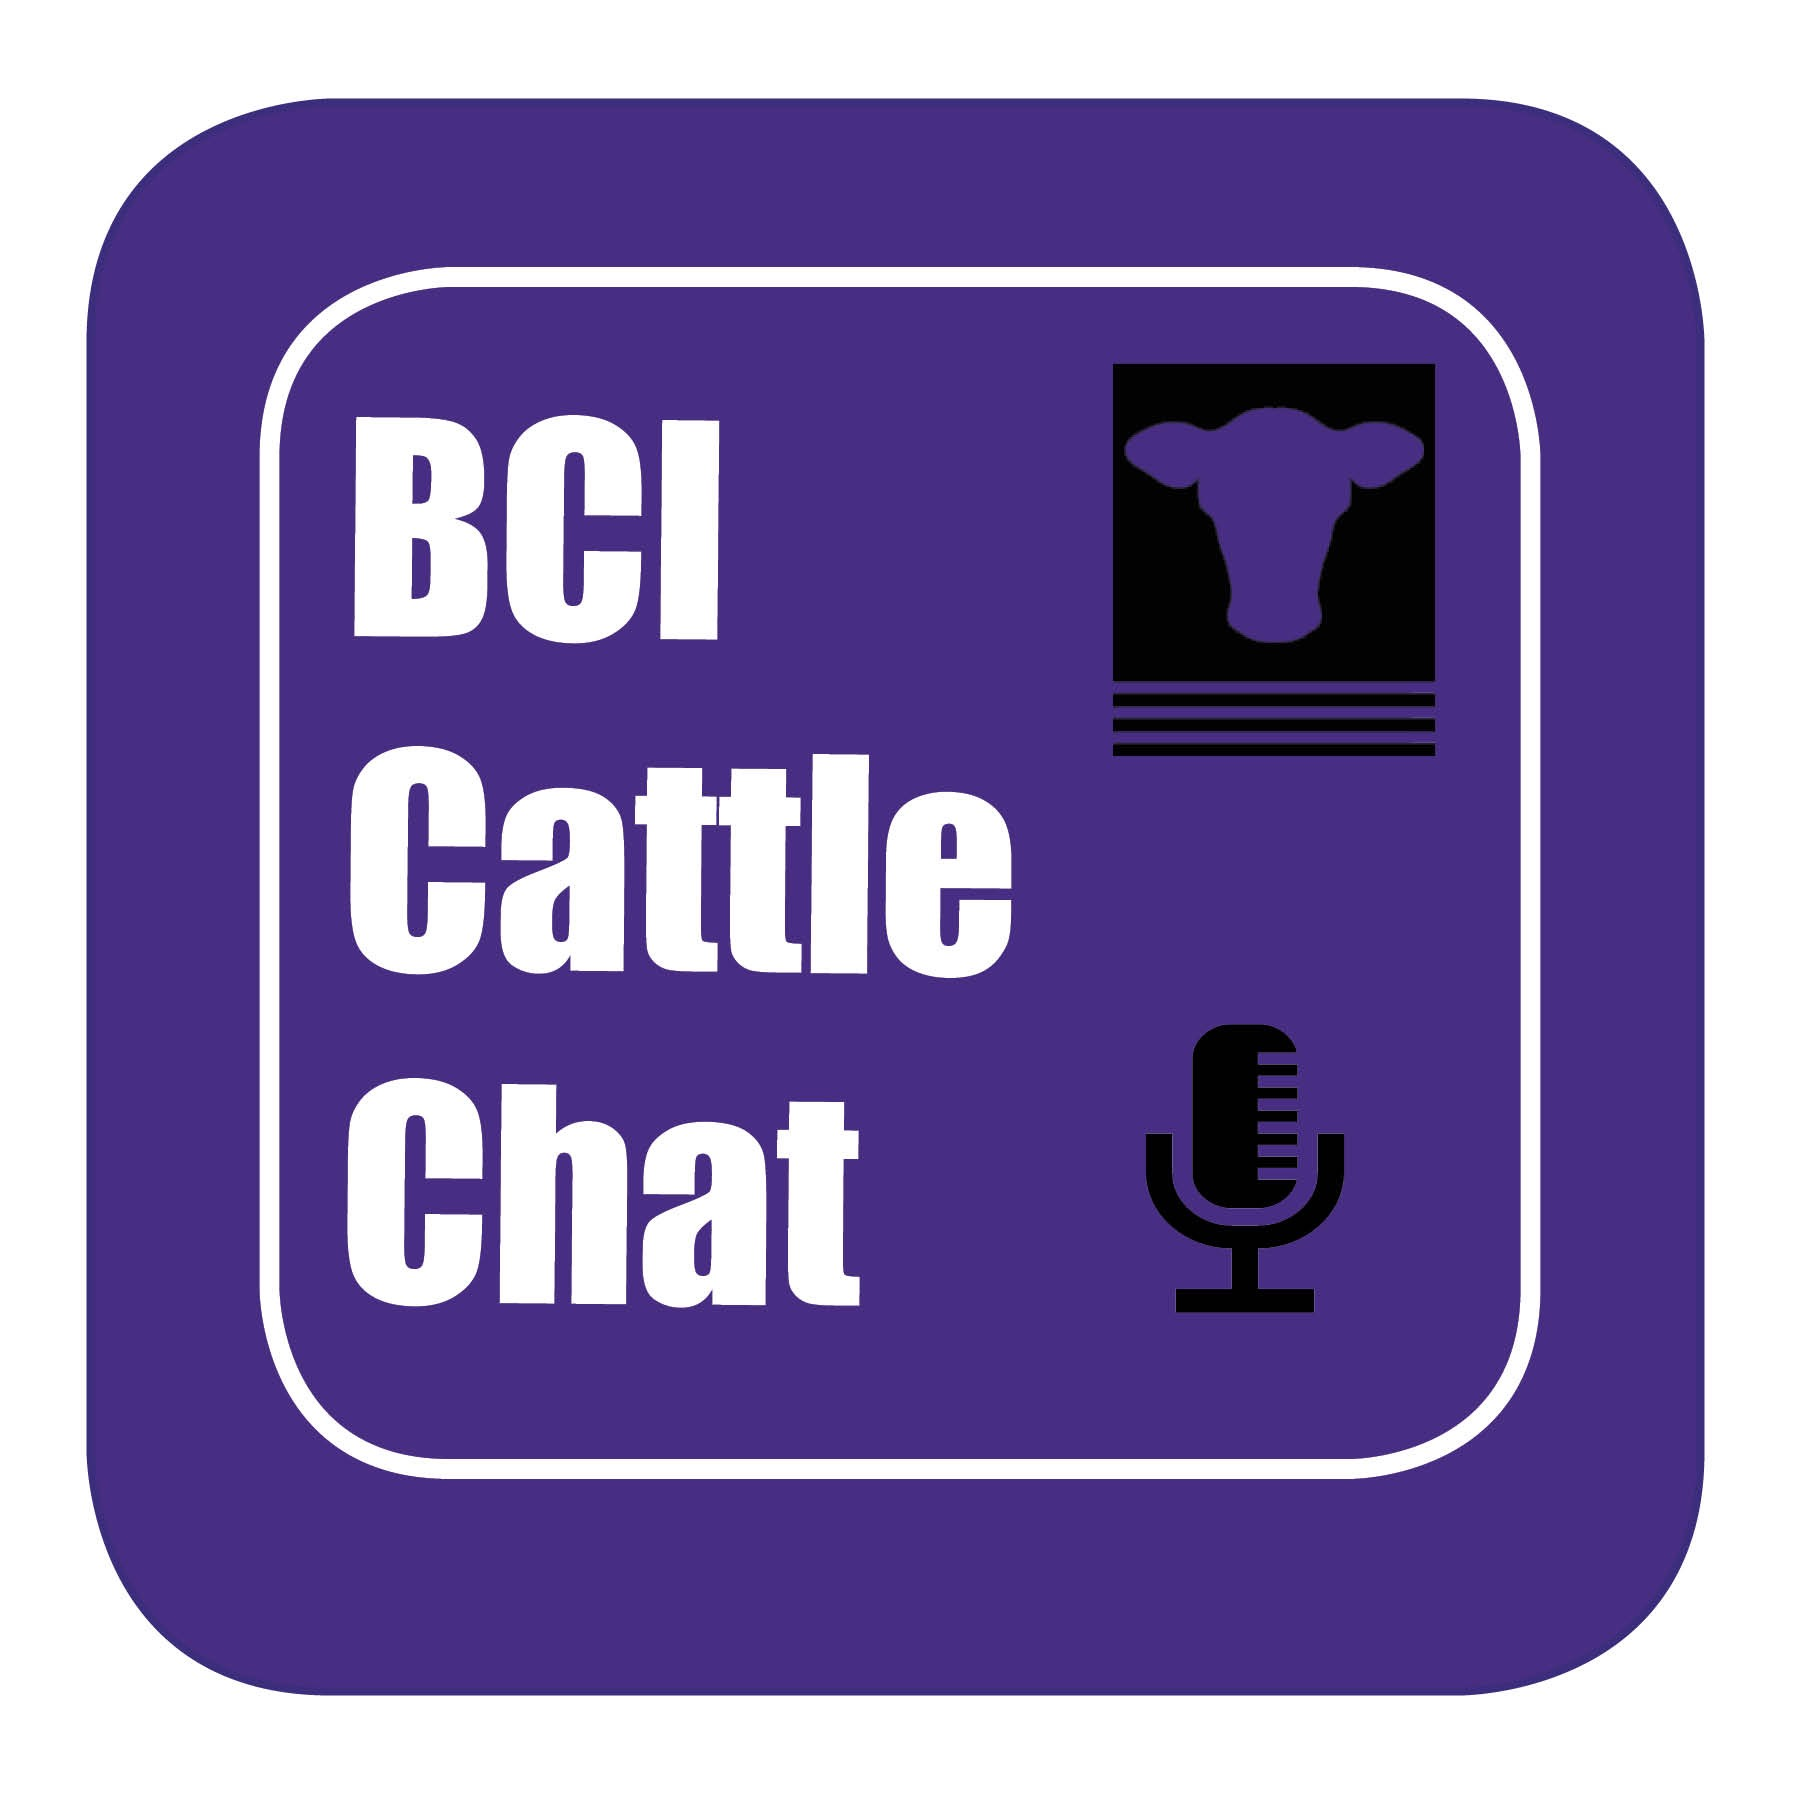 BCI Cattle Chat - Episode 6